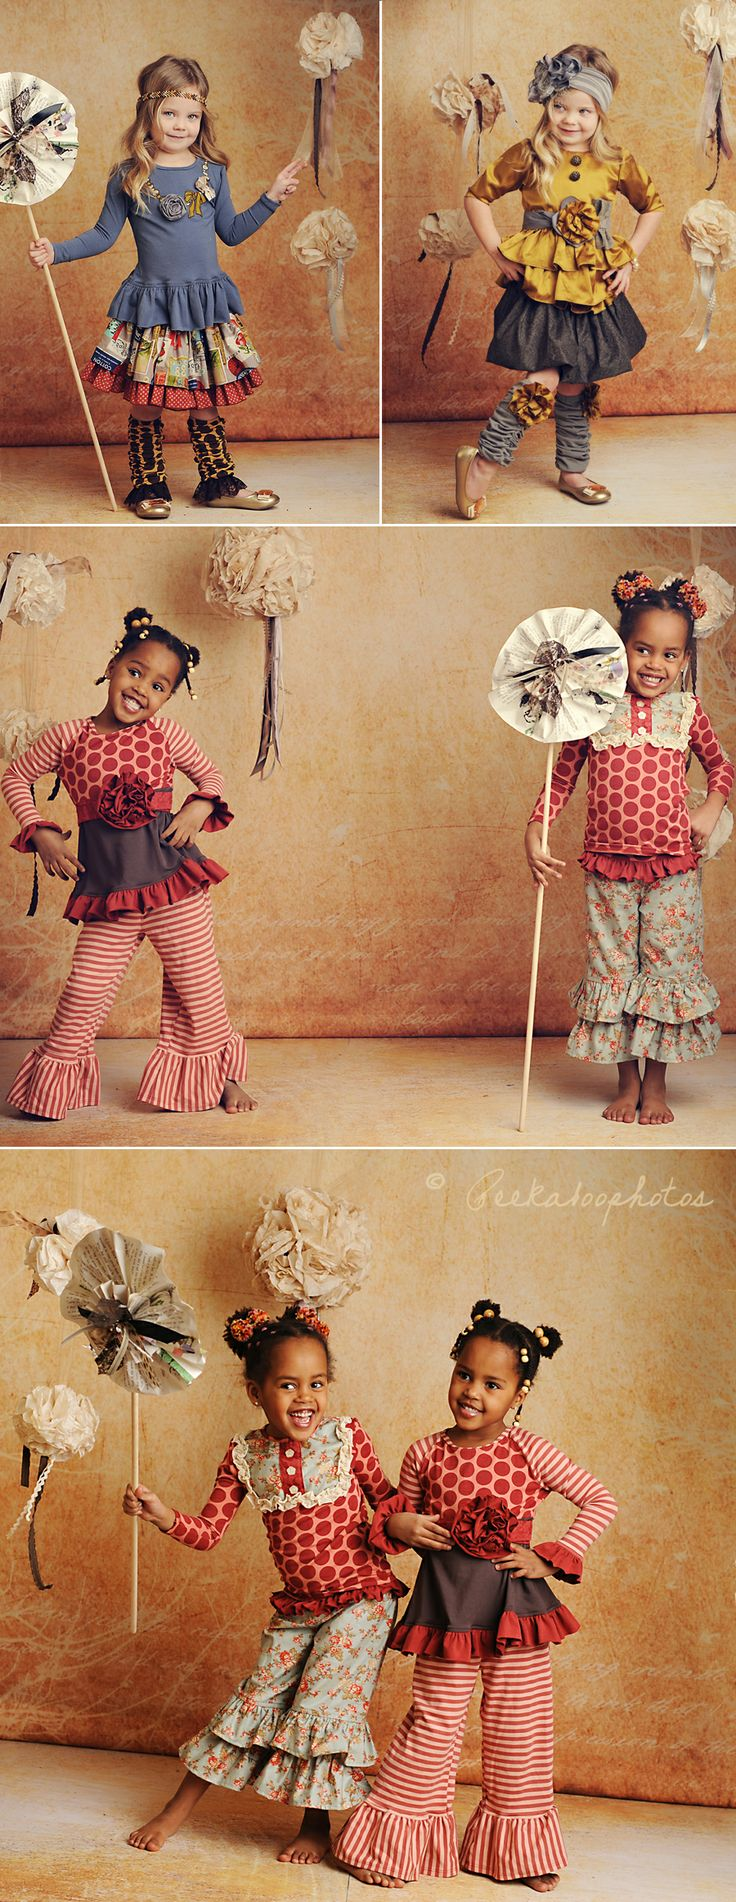 Affordable vintage-inspired kids' clothing? - Pinching Your Pennies Forums